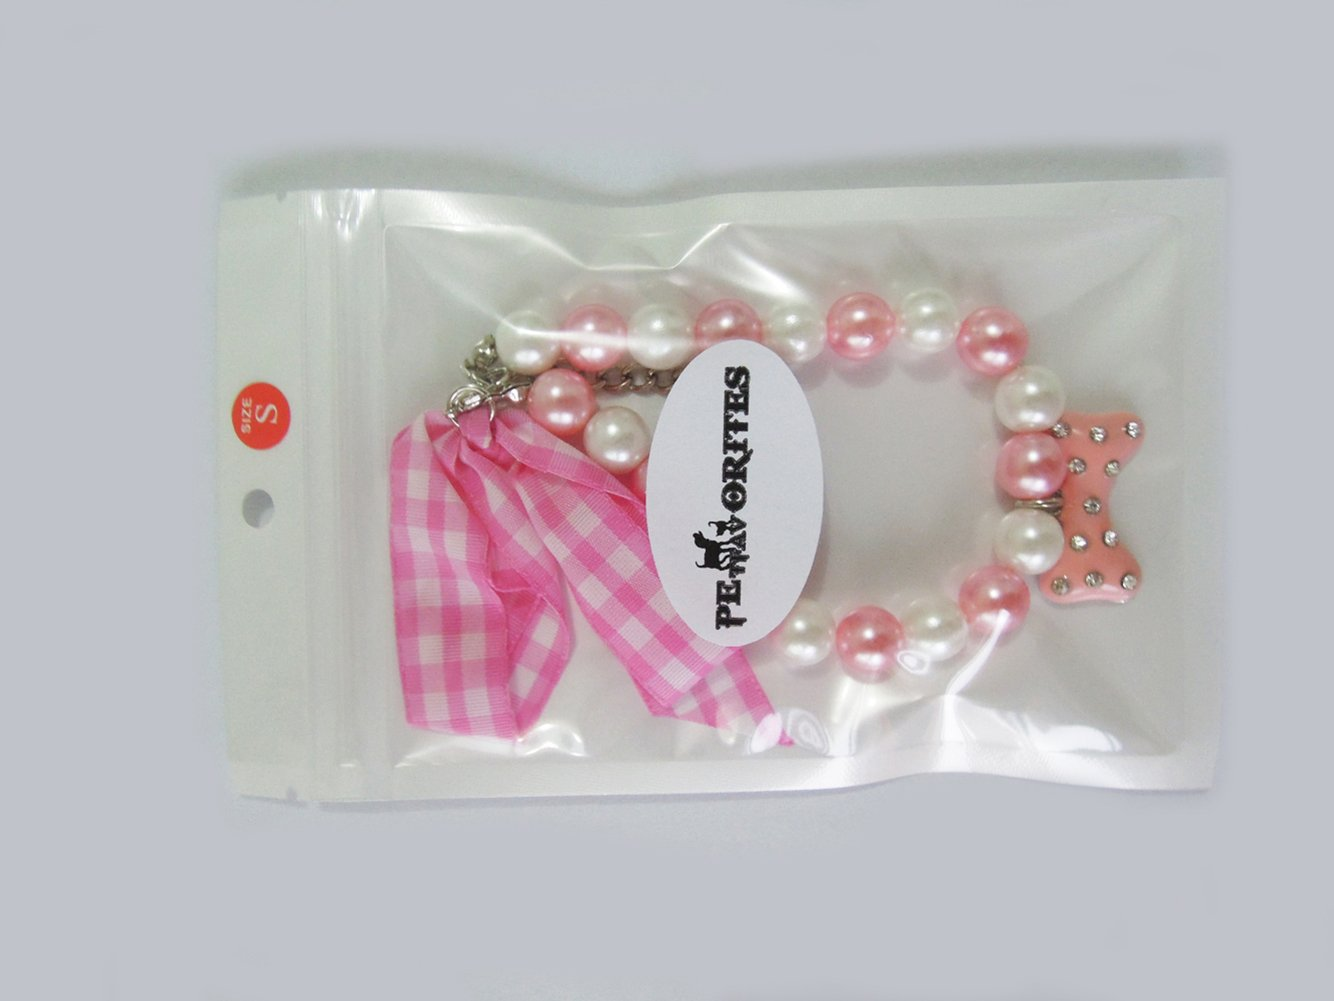 Adjustable PETFAVORITES Fancy Diamond Pearl Dog Necklace Collar Jewelry with Bling Rhinestones Bone Charm for Pets Cats Small Dogs Girl Teacup Chihuahua Yorkie Clothes Costume Outfits Accessories